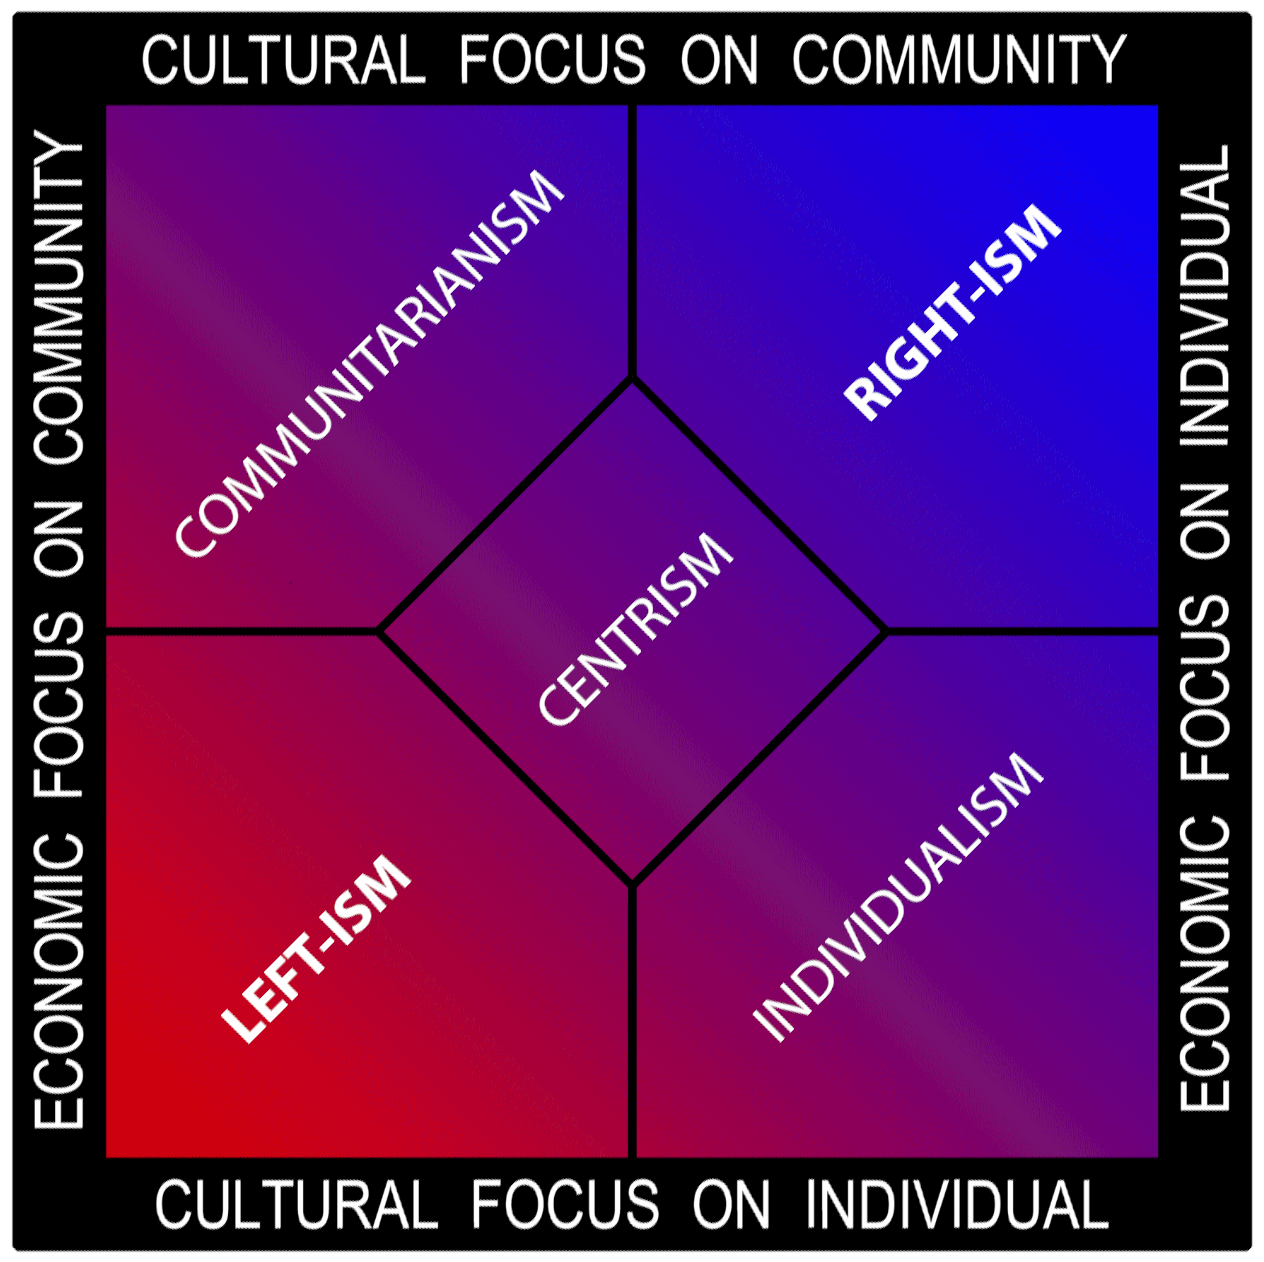 http://upload.wikimedia.org/wikipedia/commons/b/b0/Political-spectrum-multiaxis.png